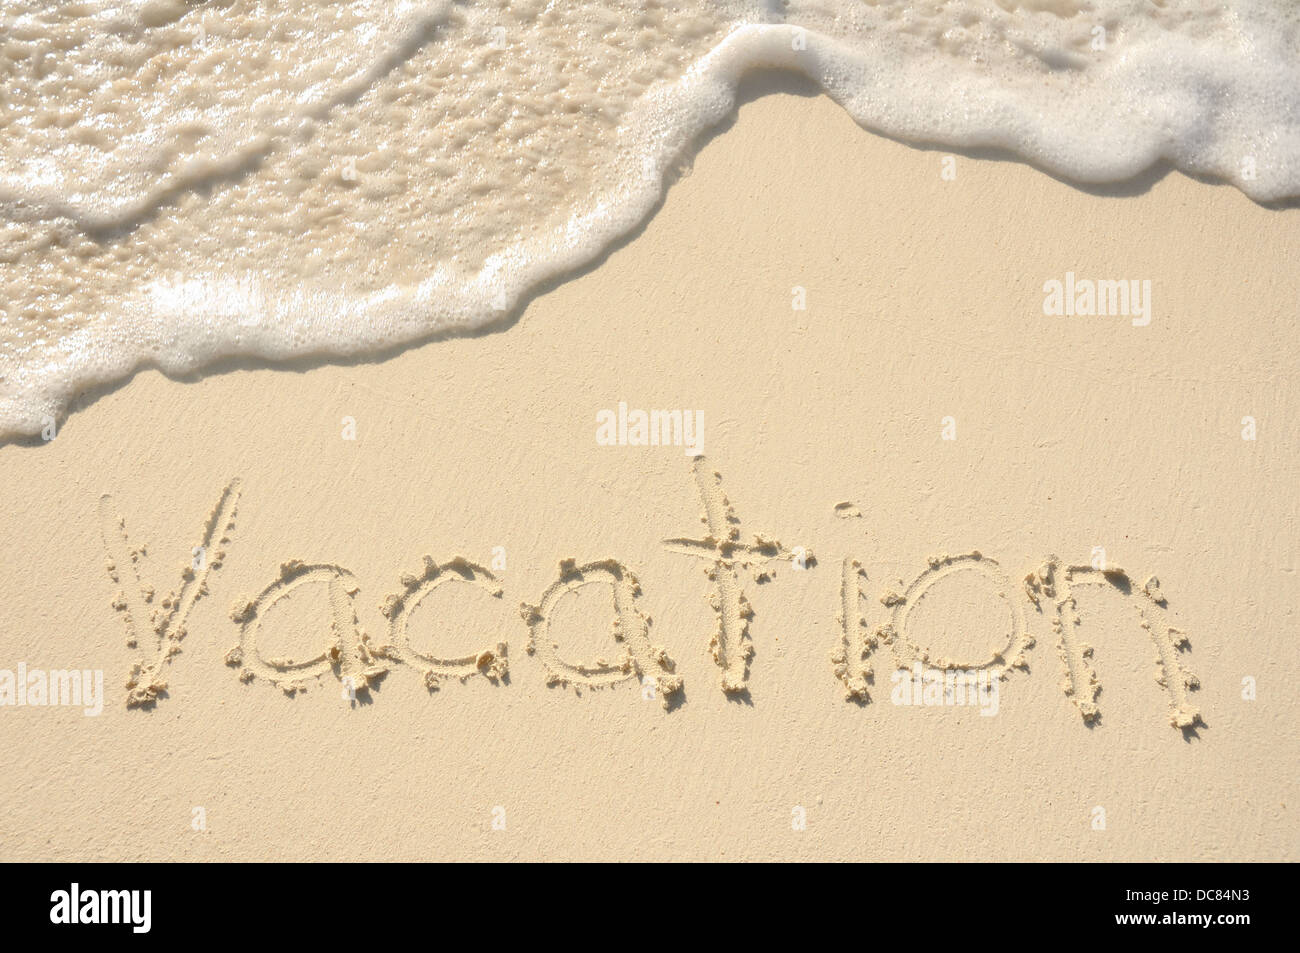 The Word 'Vacation' Written in the Sand on a Beach - Stock Image